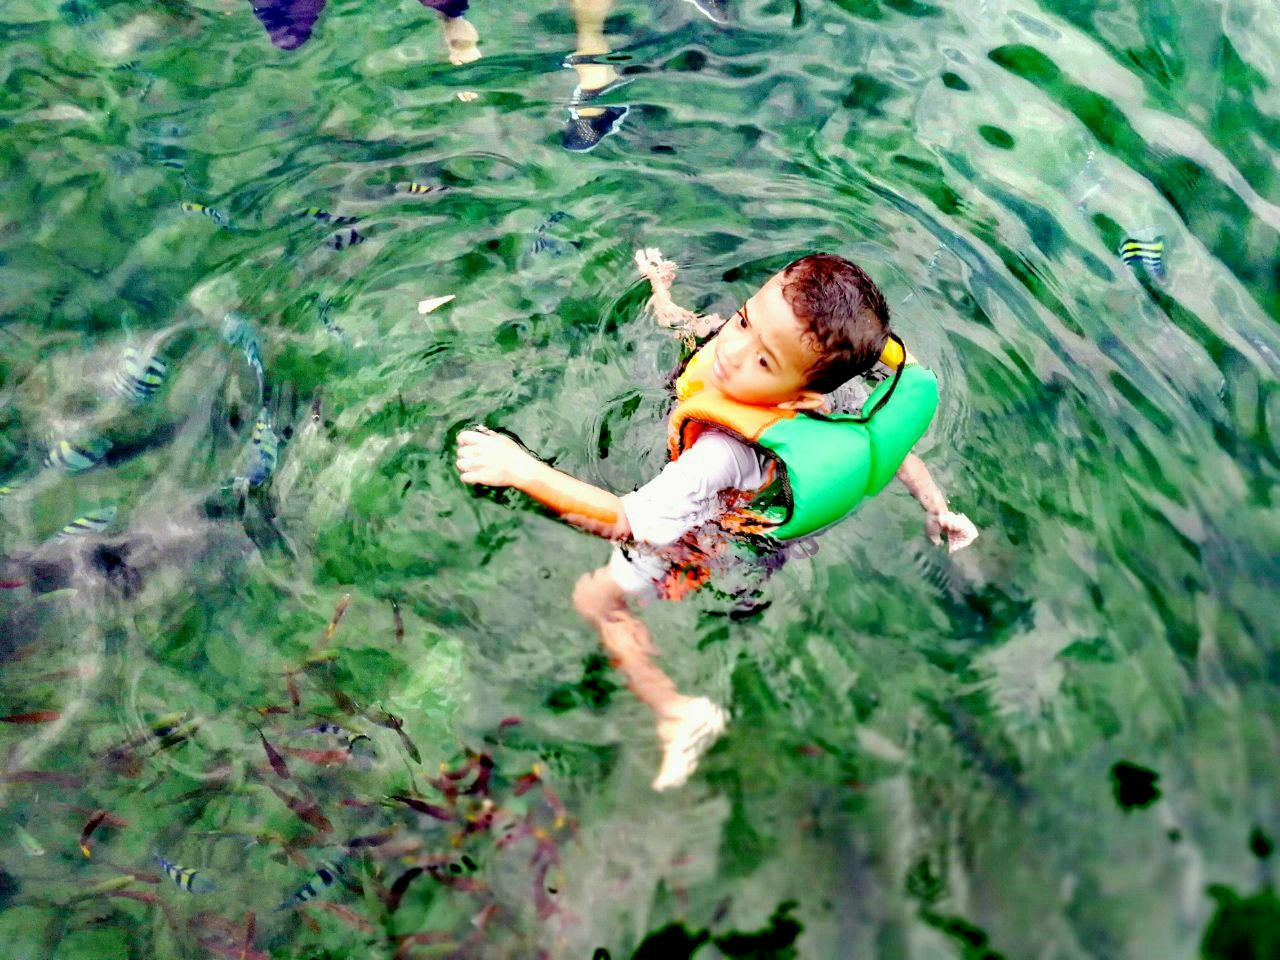 Floating at the Coral Island, Pulau Pangkor, Perak , Malaysia.Pangkor Island Malaysia Sea View Coral Fish Kids Having Fun Floating On Water Break The Mold EyeEmNewHere Clear Water Crystal Clear Waters The Great Outdoors - 2017 EyeEm Awards Neighborhood Map Live For The Story